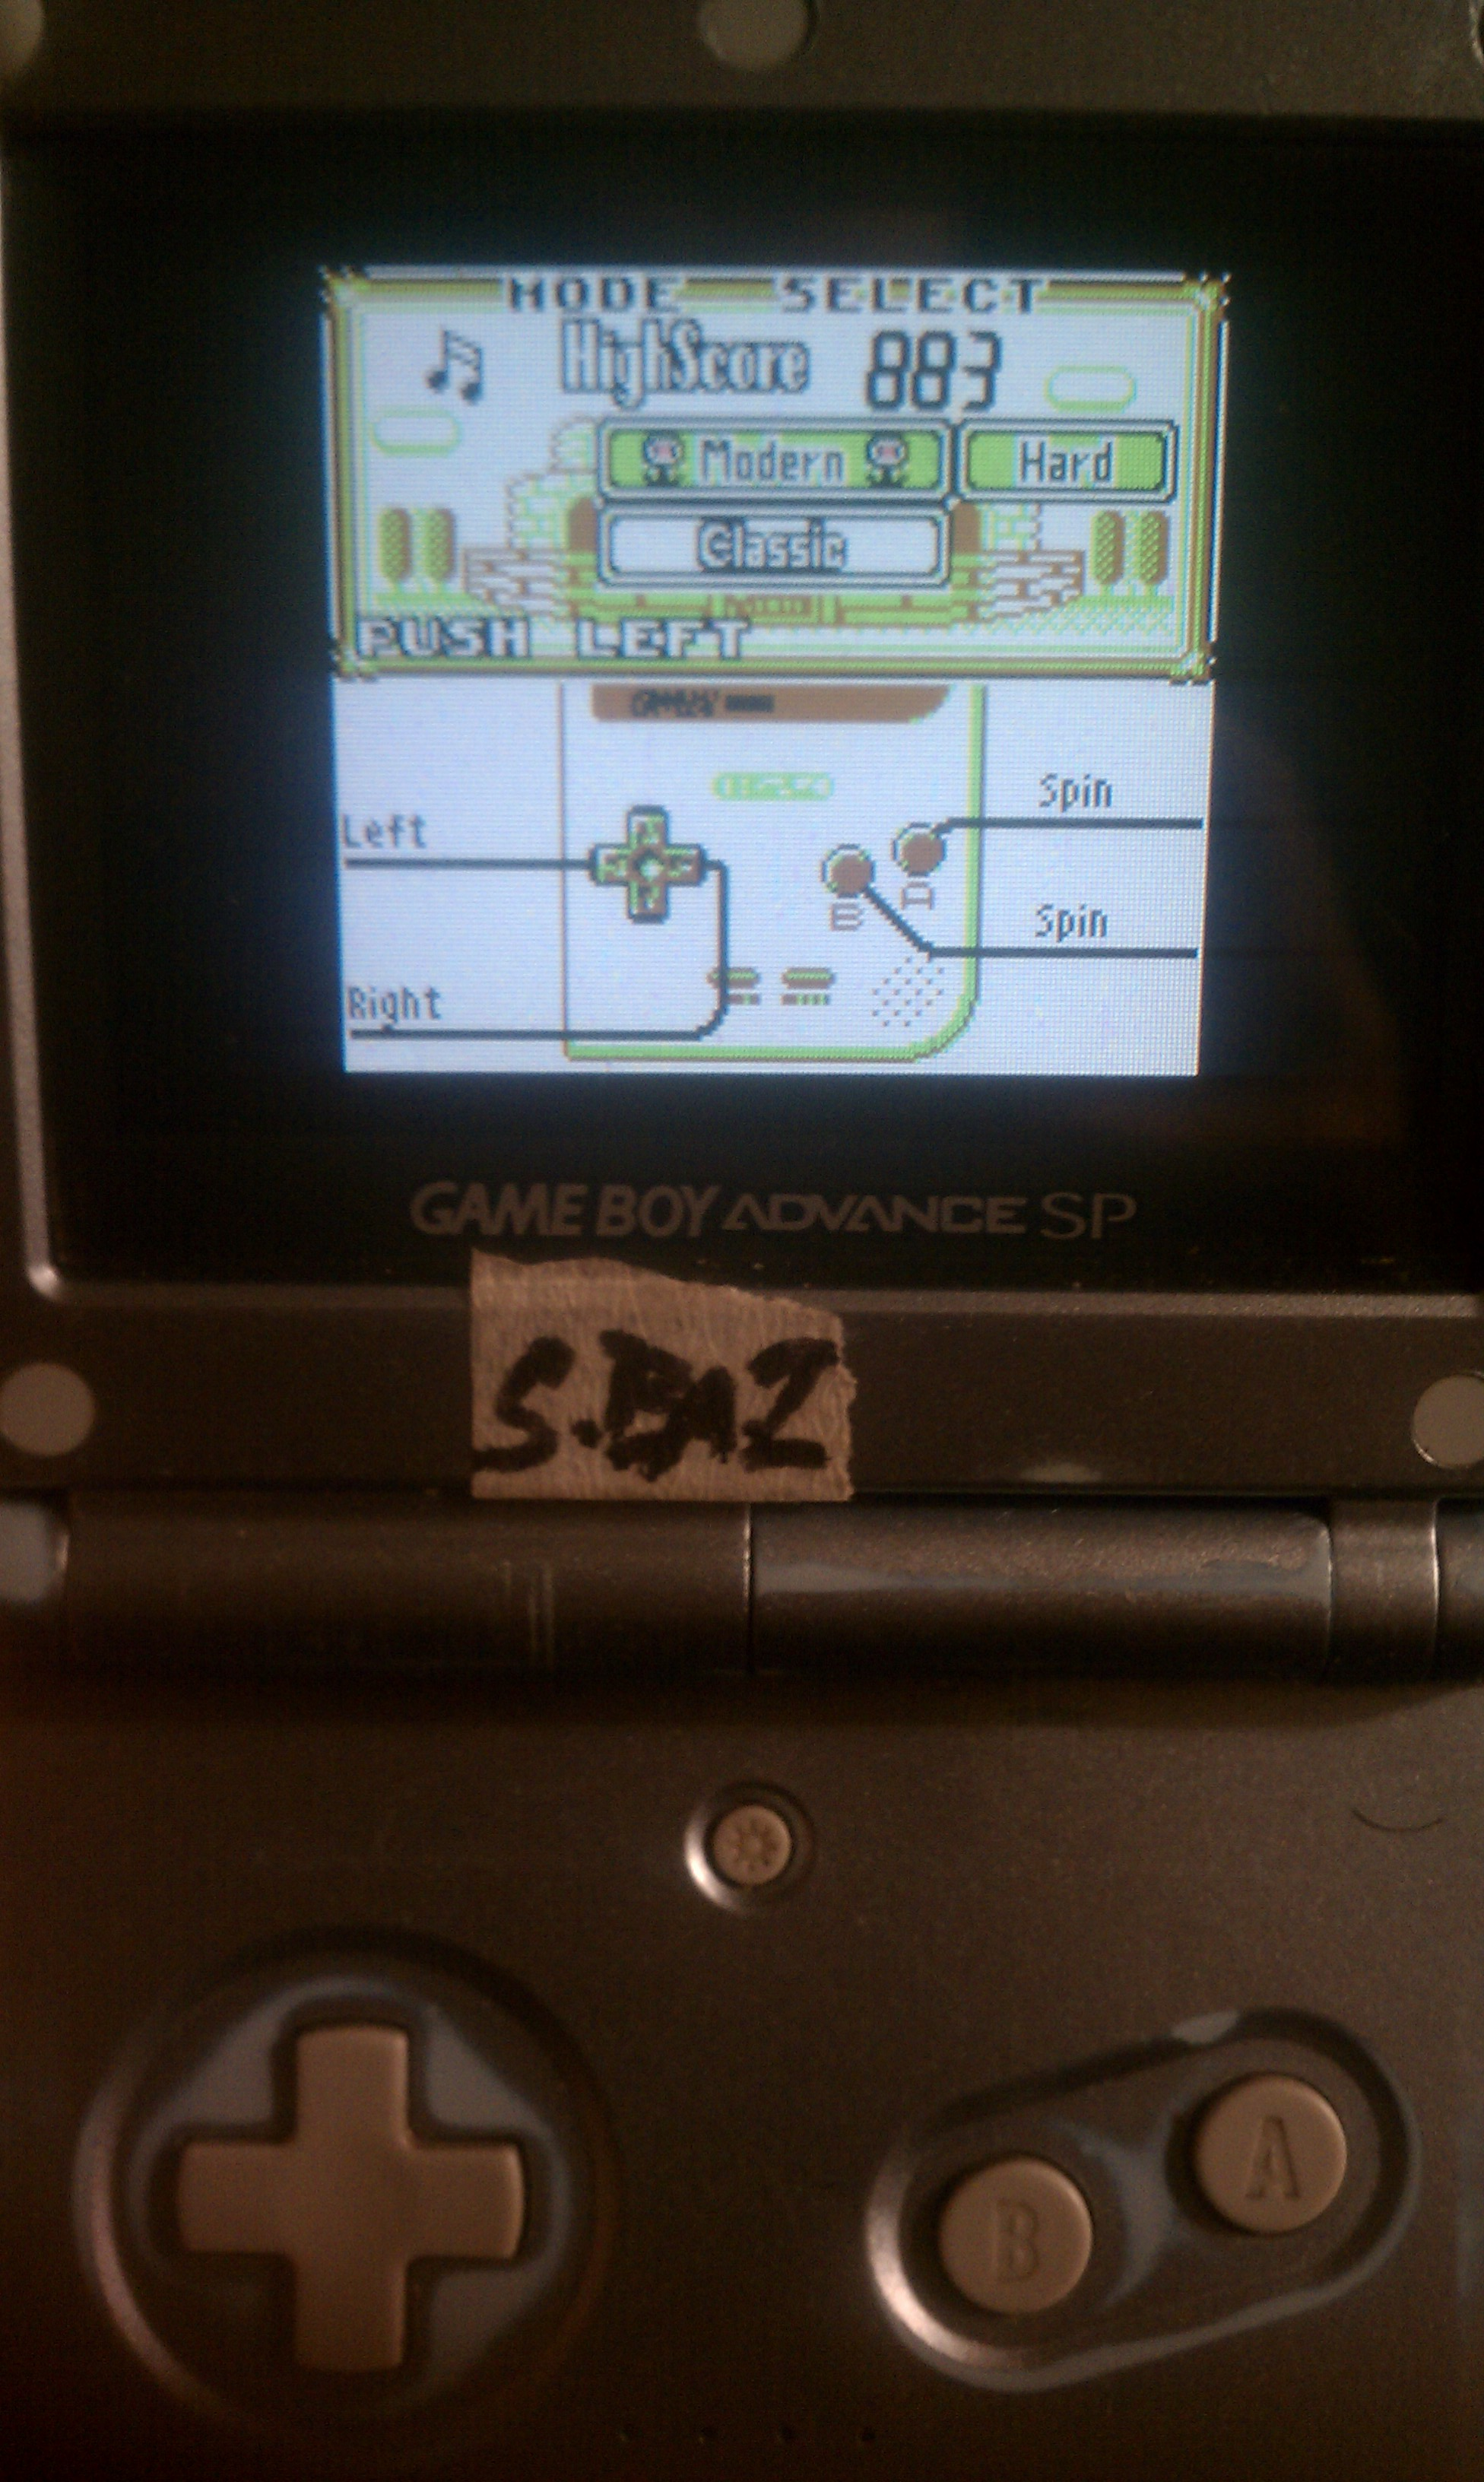 S.BAZ: Game & Watch Gallery: Oil Panic [Modern: Hard] (Game Boy) 883 points on 2020-08-02 19:03:56